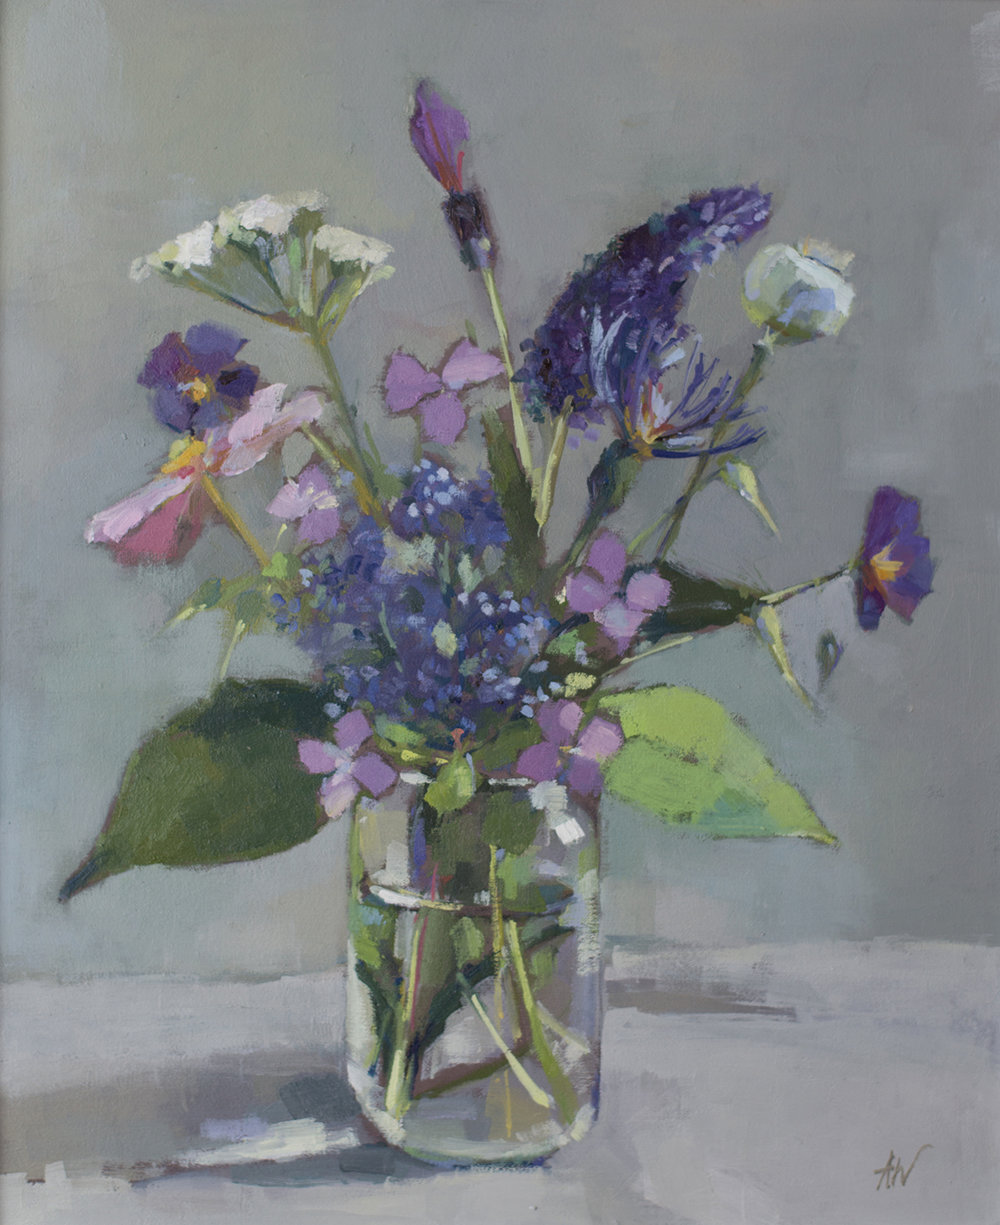 Purple flowers in jam jar